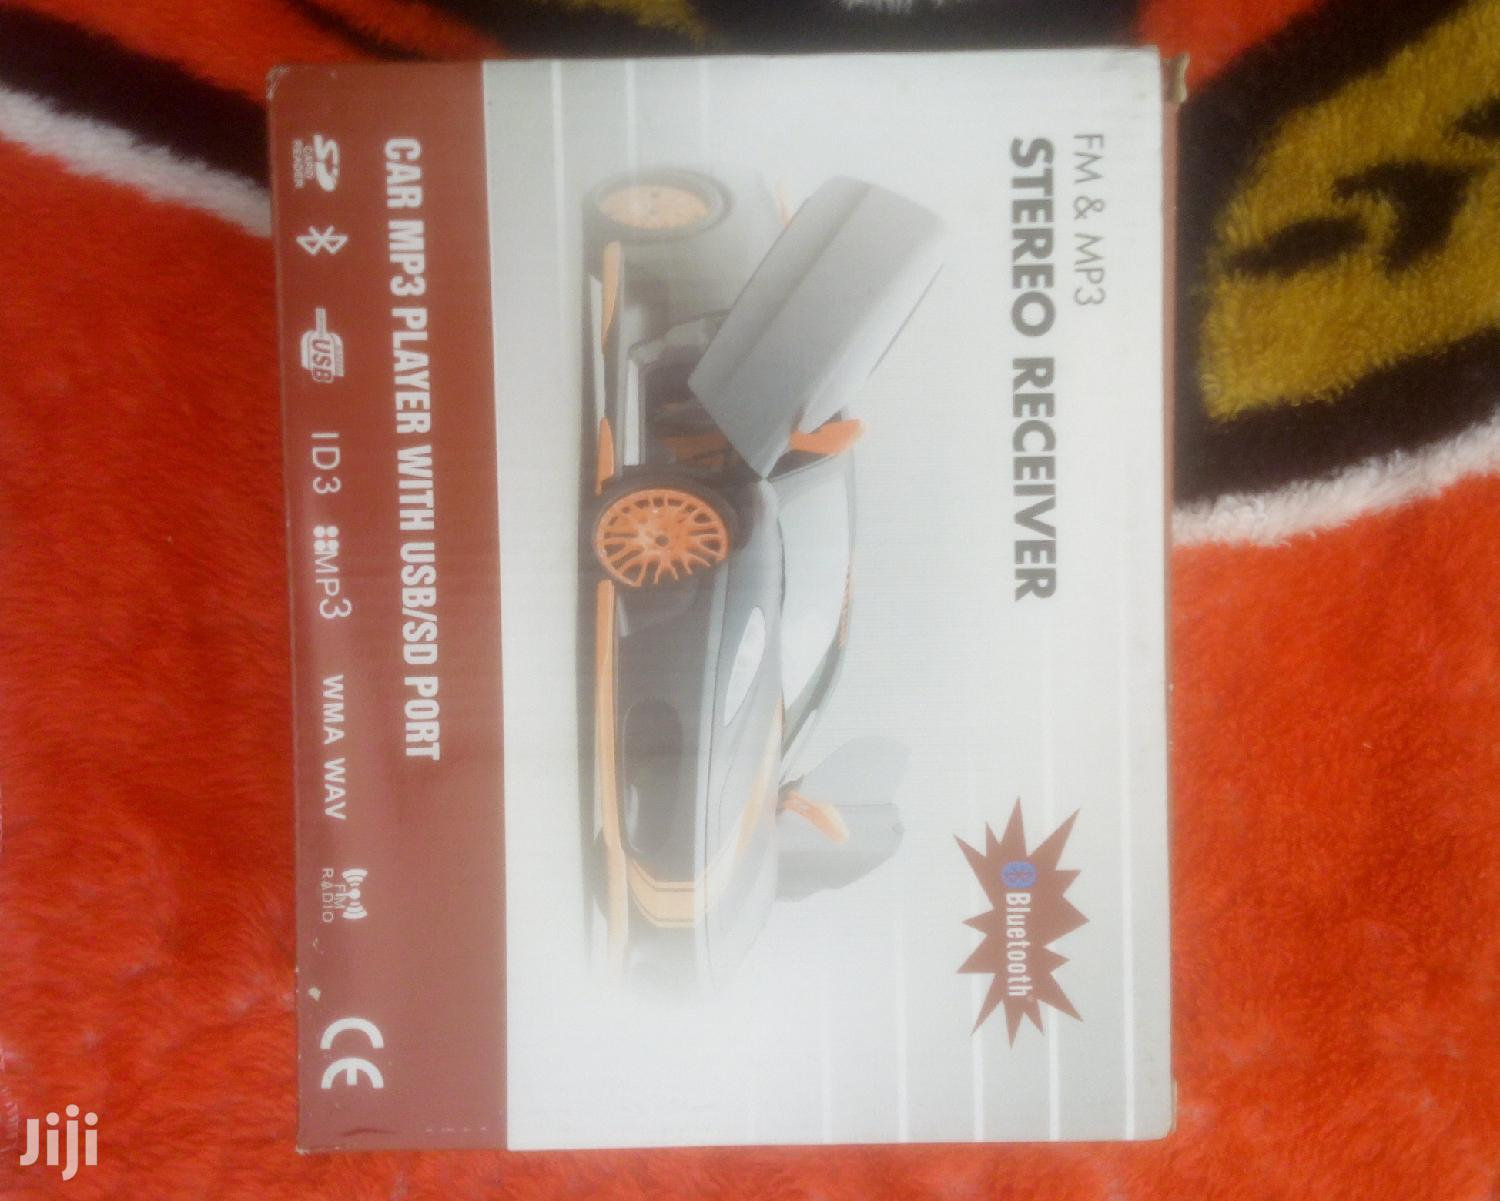 Car Radio and Tape | Vehicle Parts & Accessories for sale in Bawaleshie, East Legon, Ghana